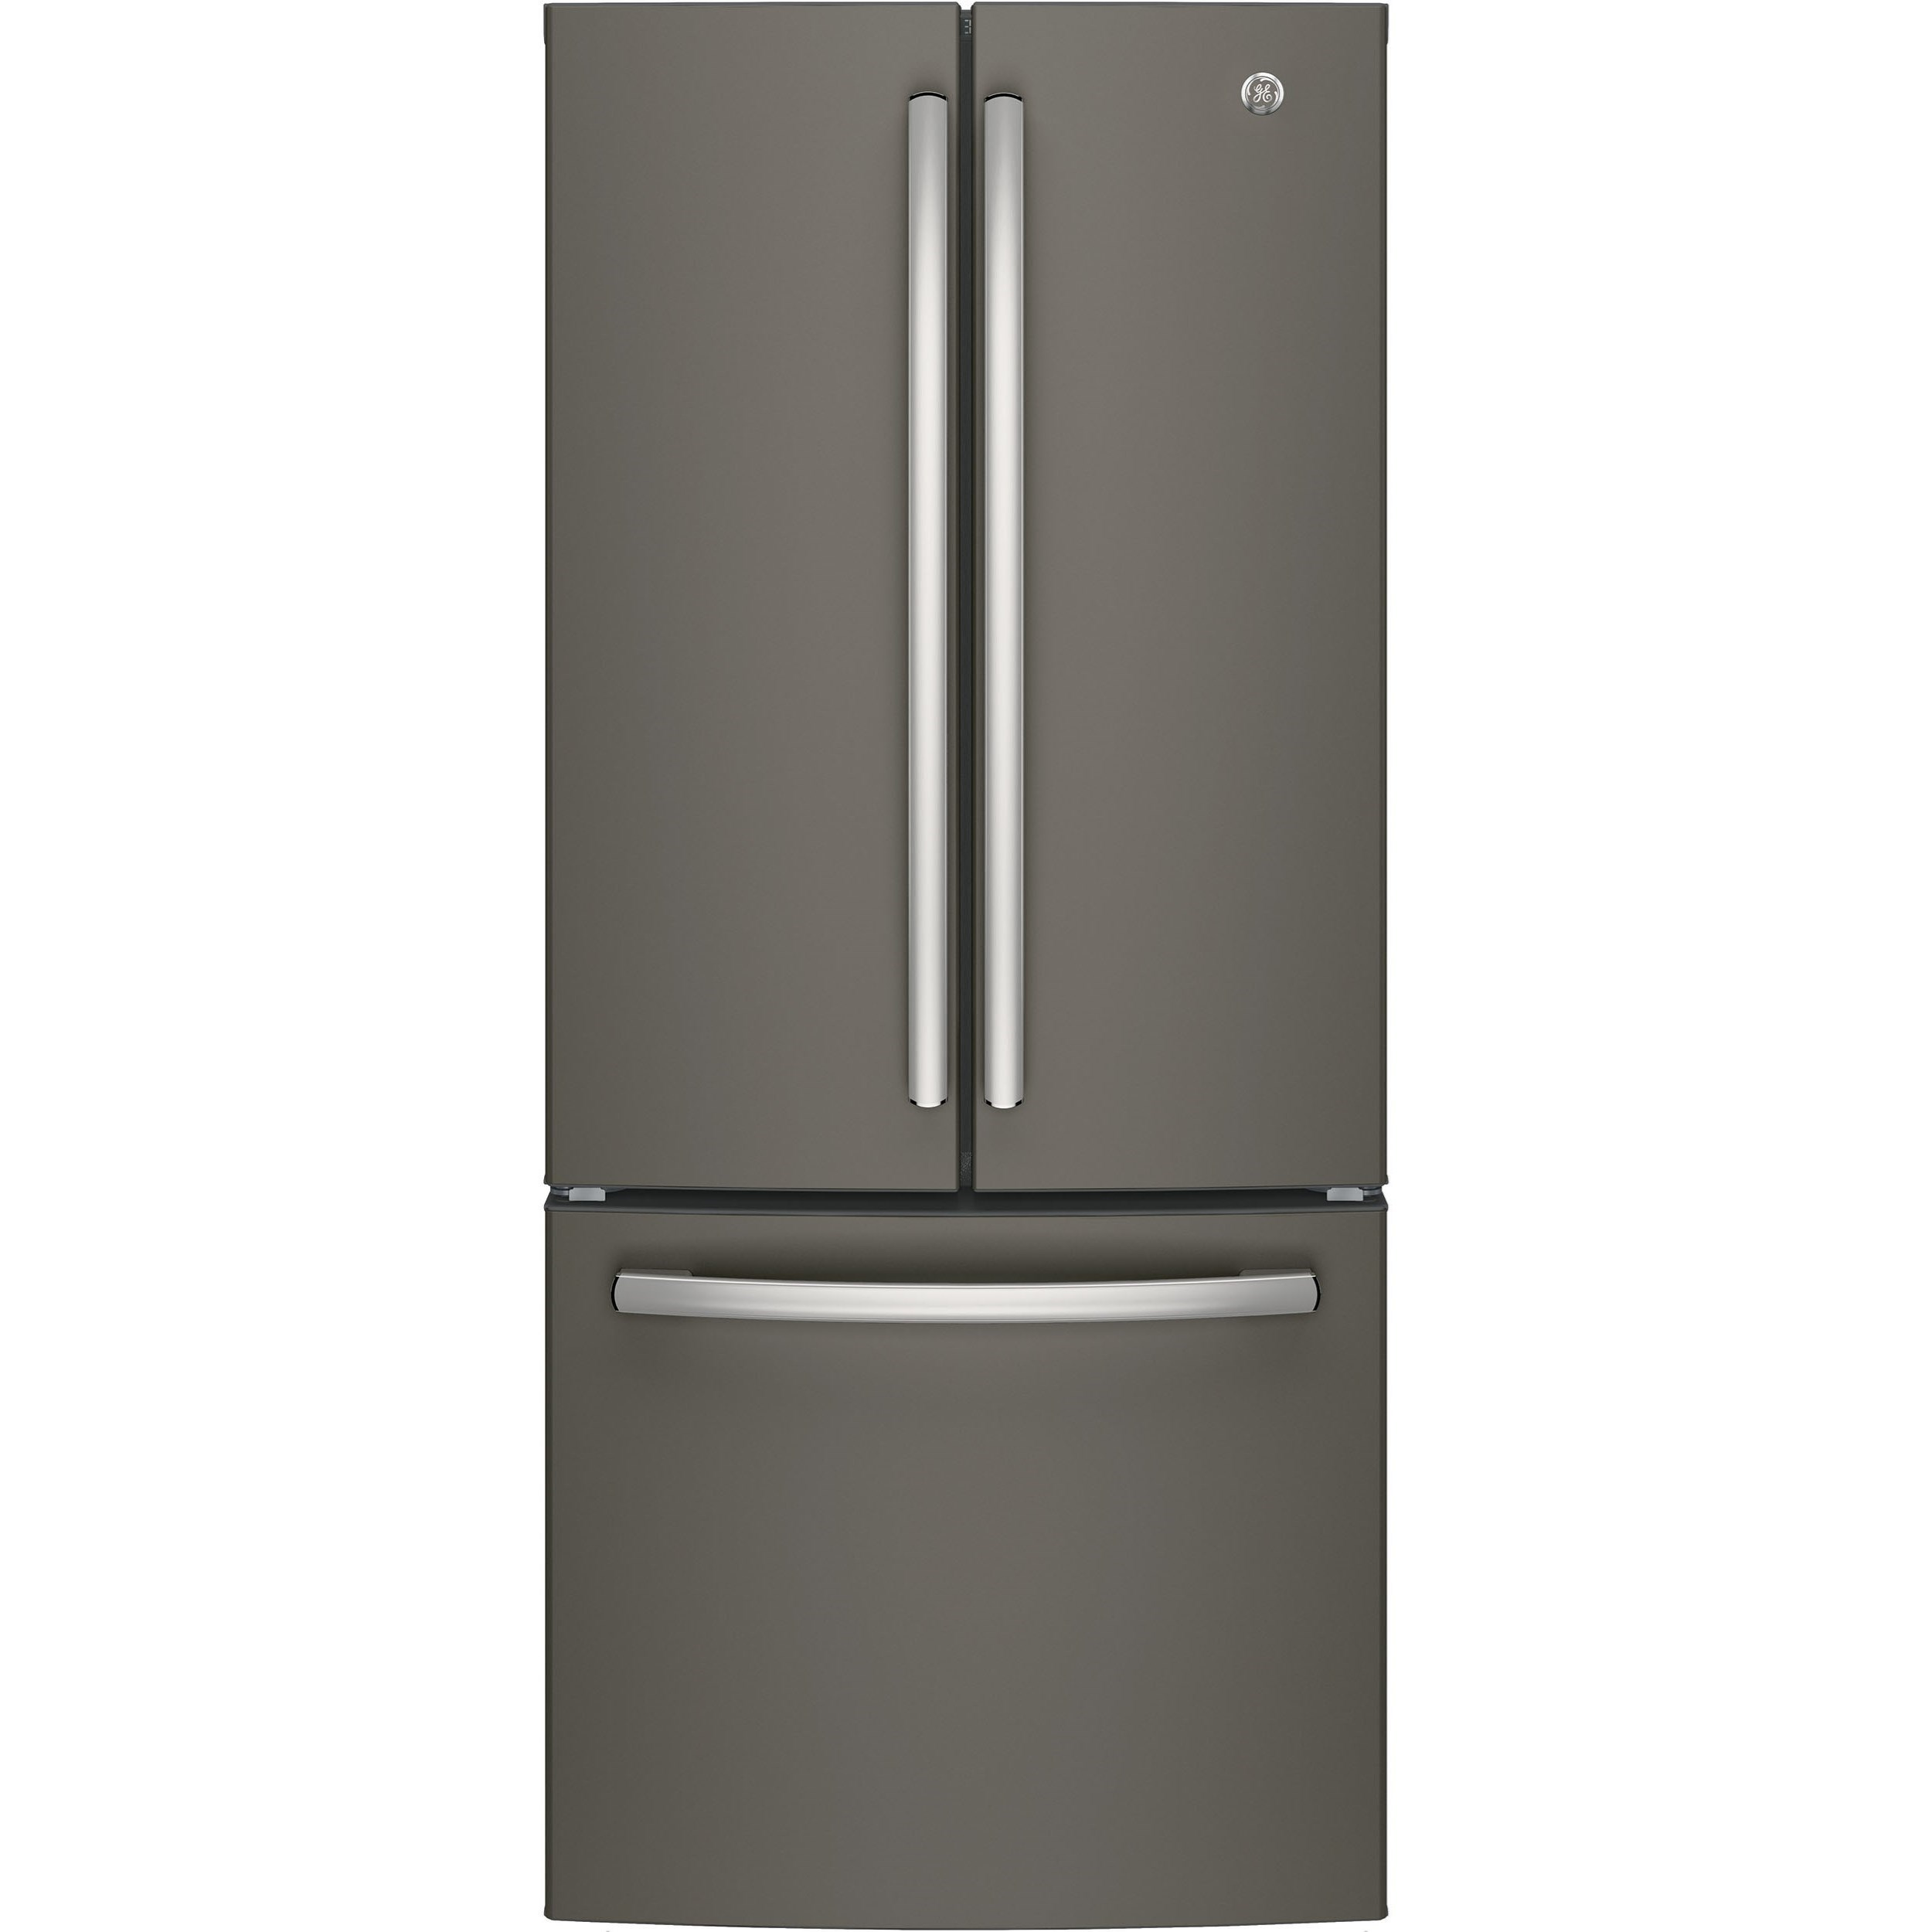 GE French Door Refrigerators 20.8 Cu. Ft. French-Door Refrigerator by GE Appliances at Westrich Furniture & Appliances